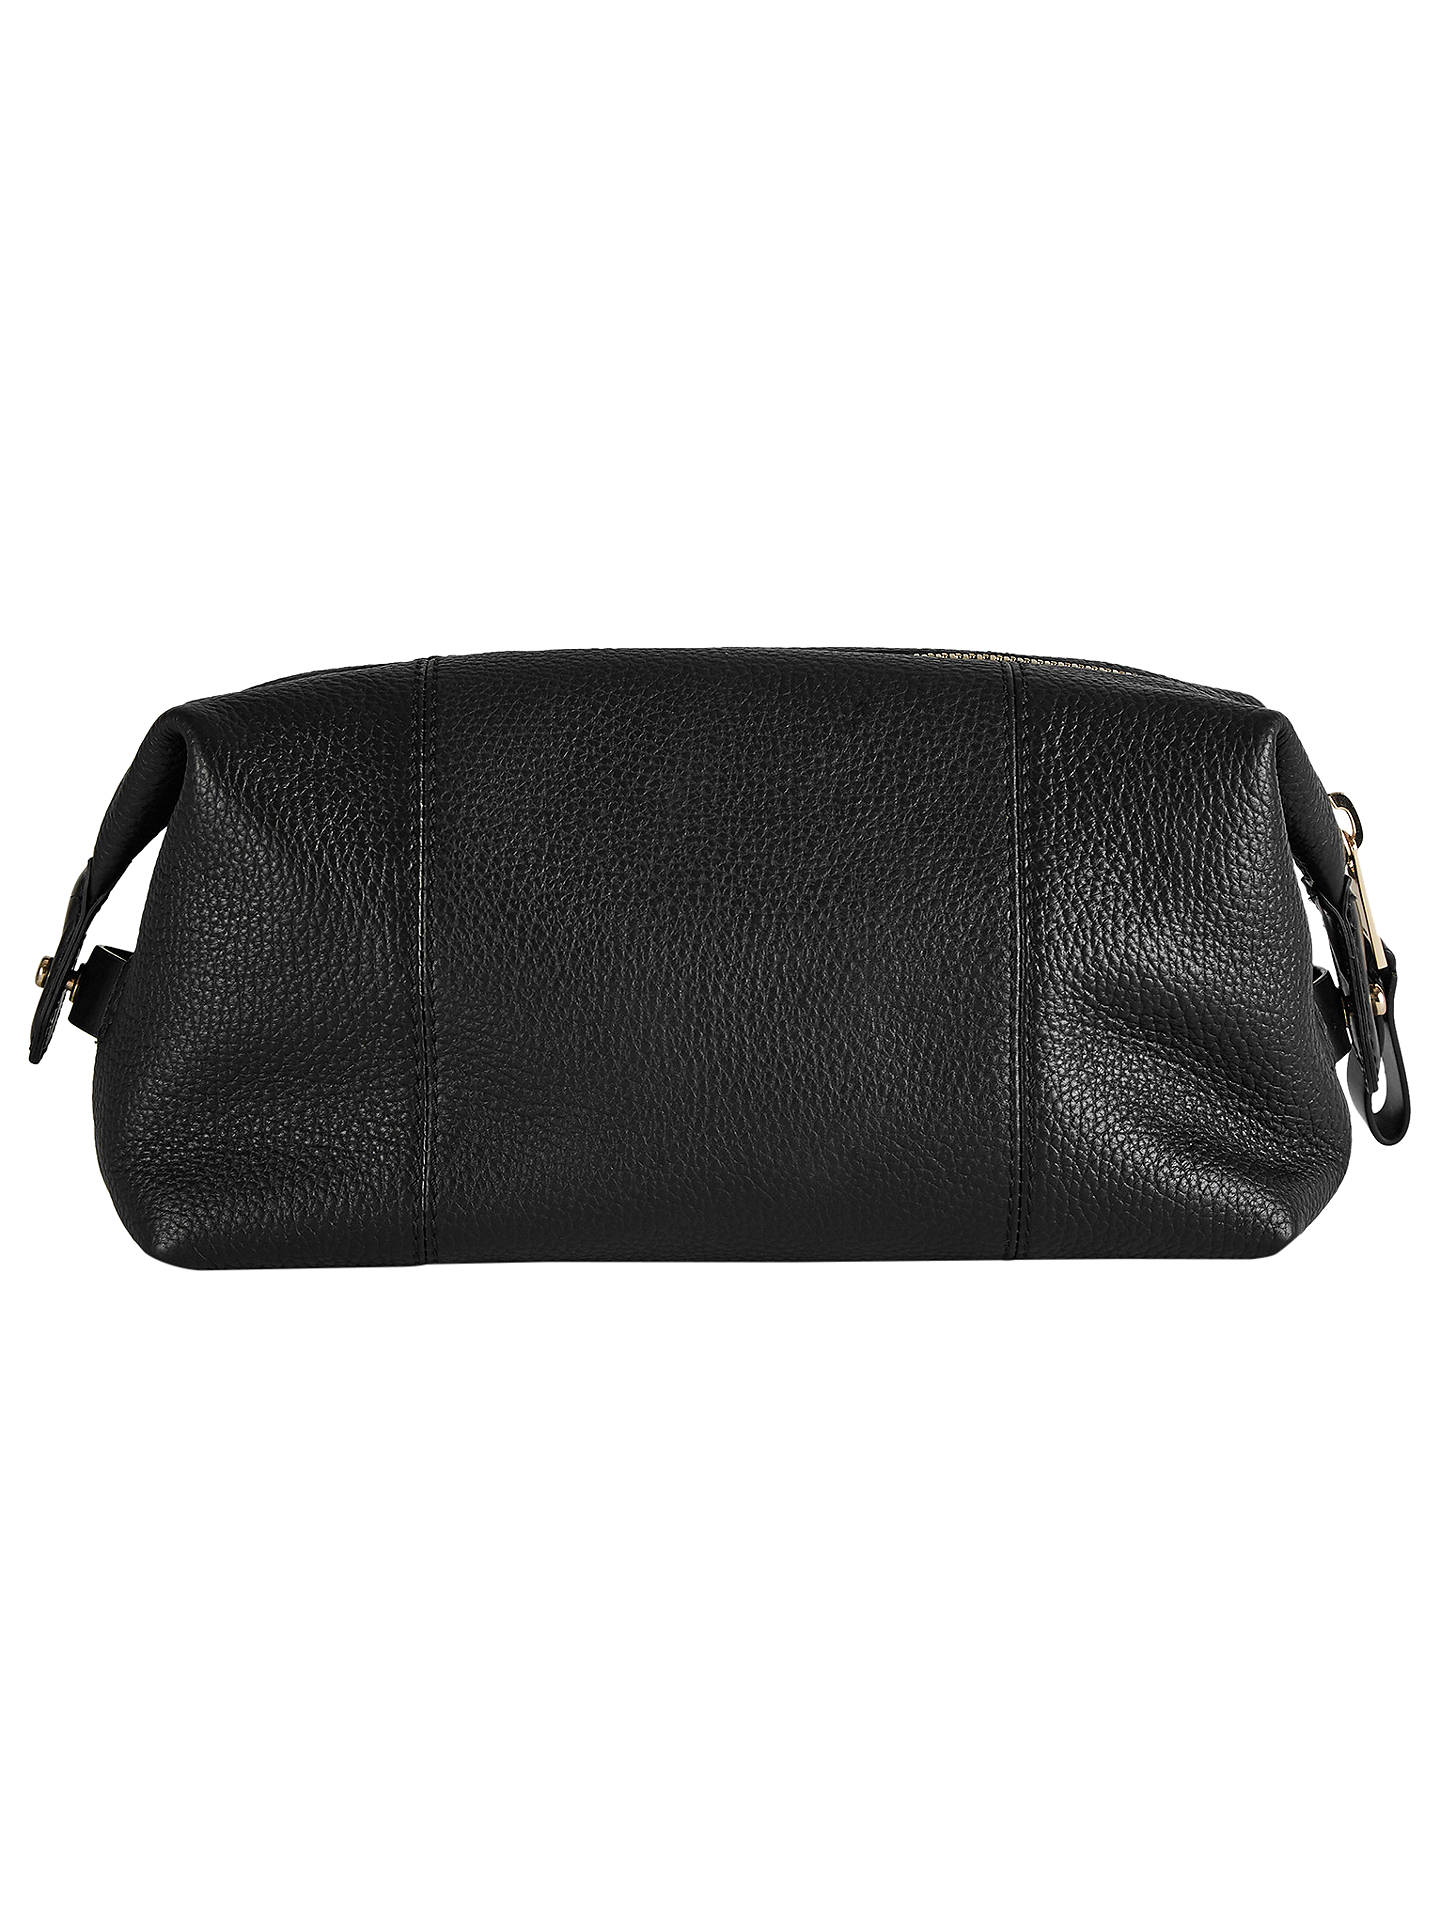 BuyReiss Wellington Leather Wash Bag, Black Online at johnlewis.com